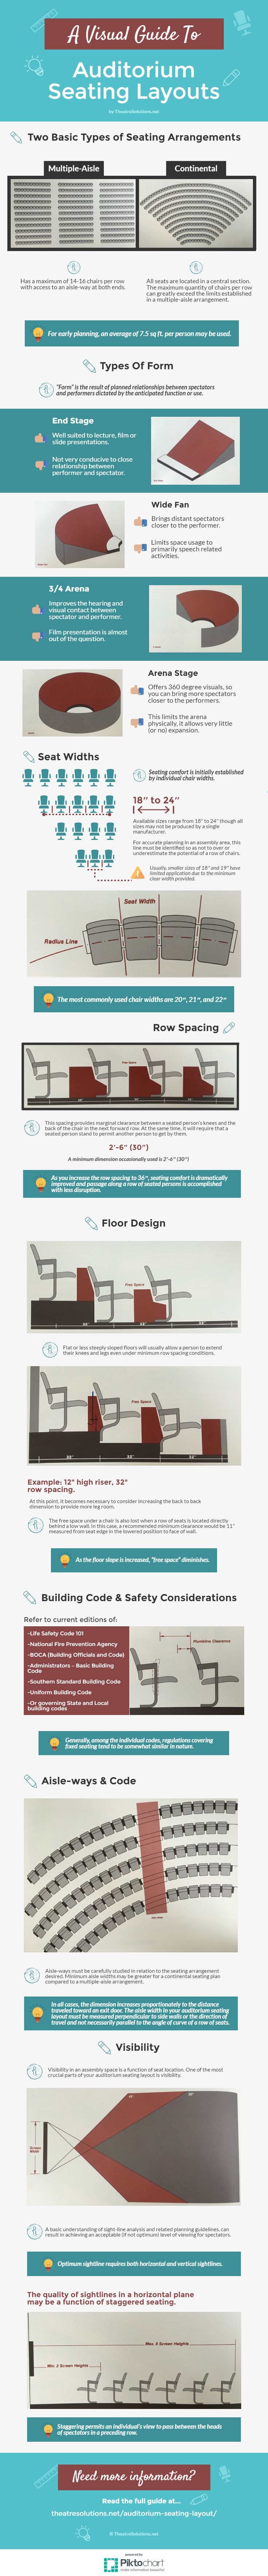 Auditorium Seating Layout & Dimensions Guide | Theatre Solutions Inc.FacebookGoogle+Twitter